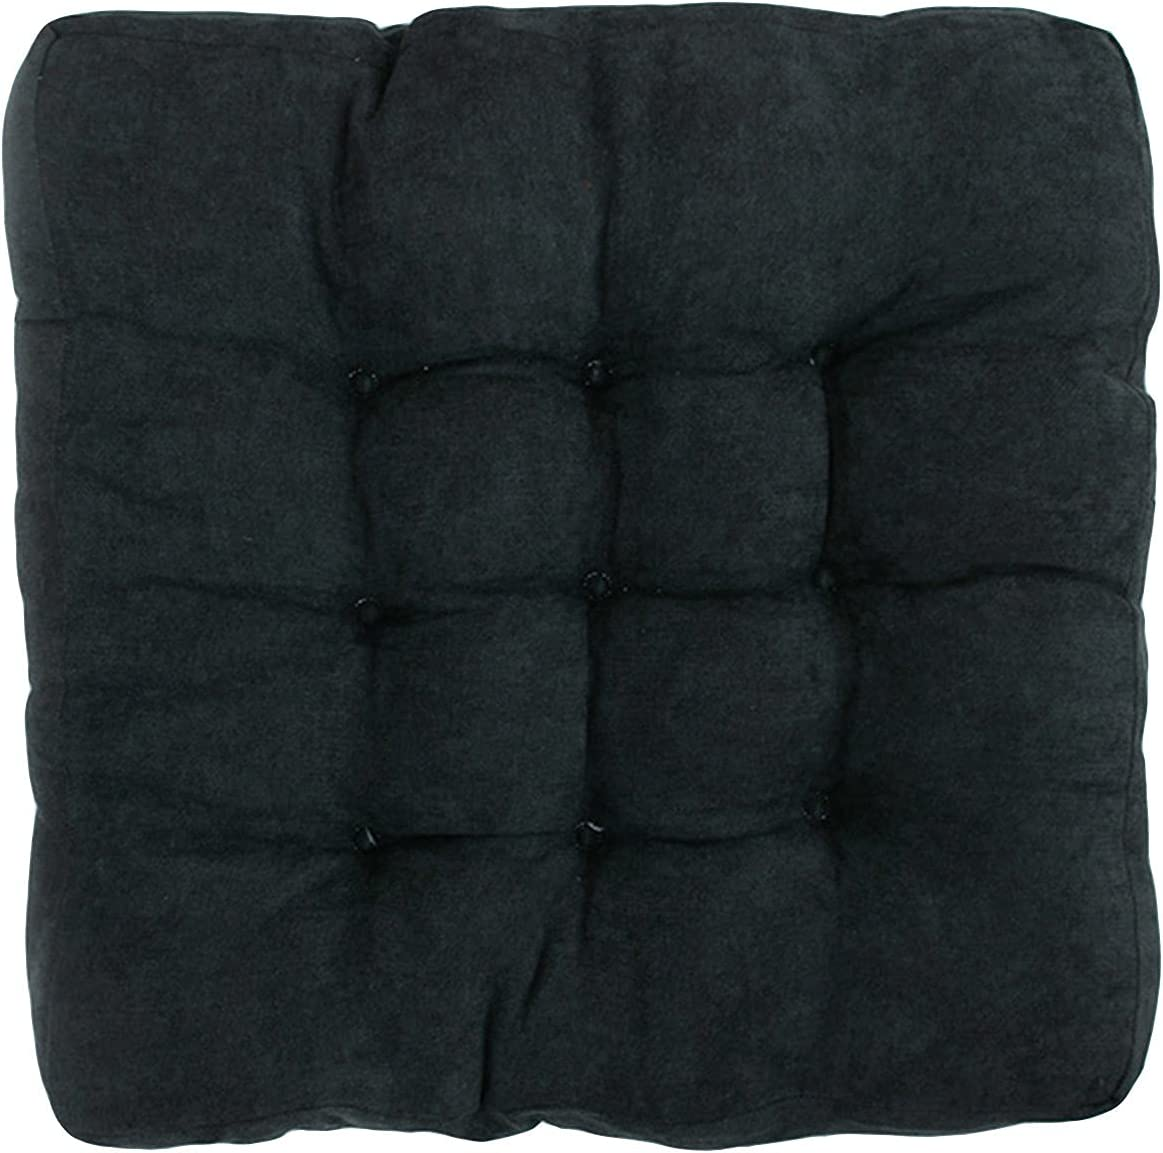 KIJH Max 61% OFF Polyester Blue Chair New arrival Cushion Square Filling Seat Pads